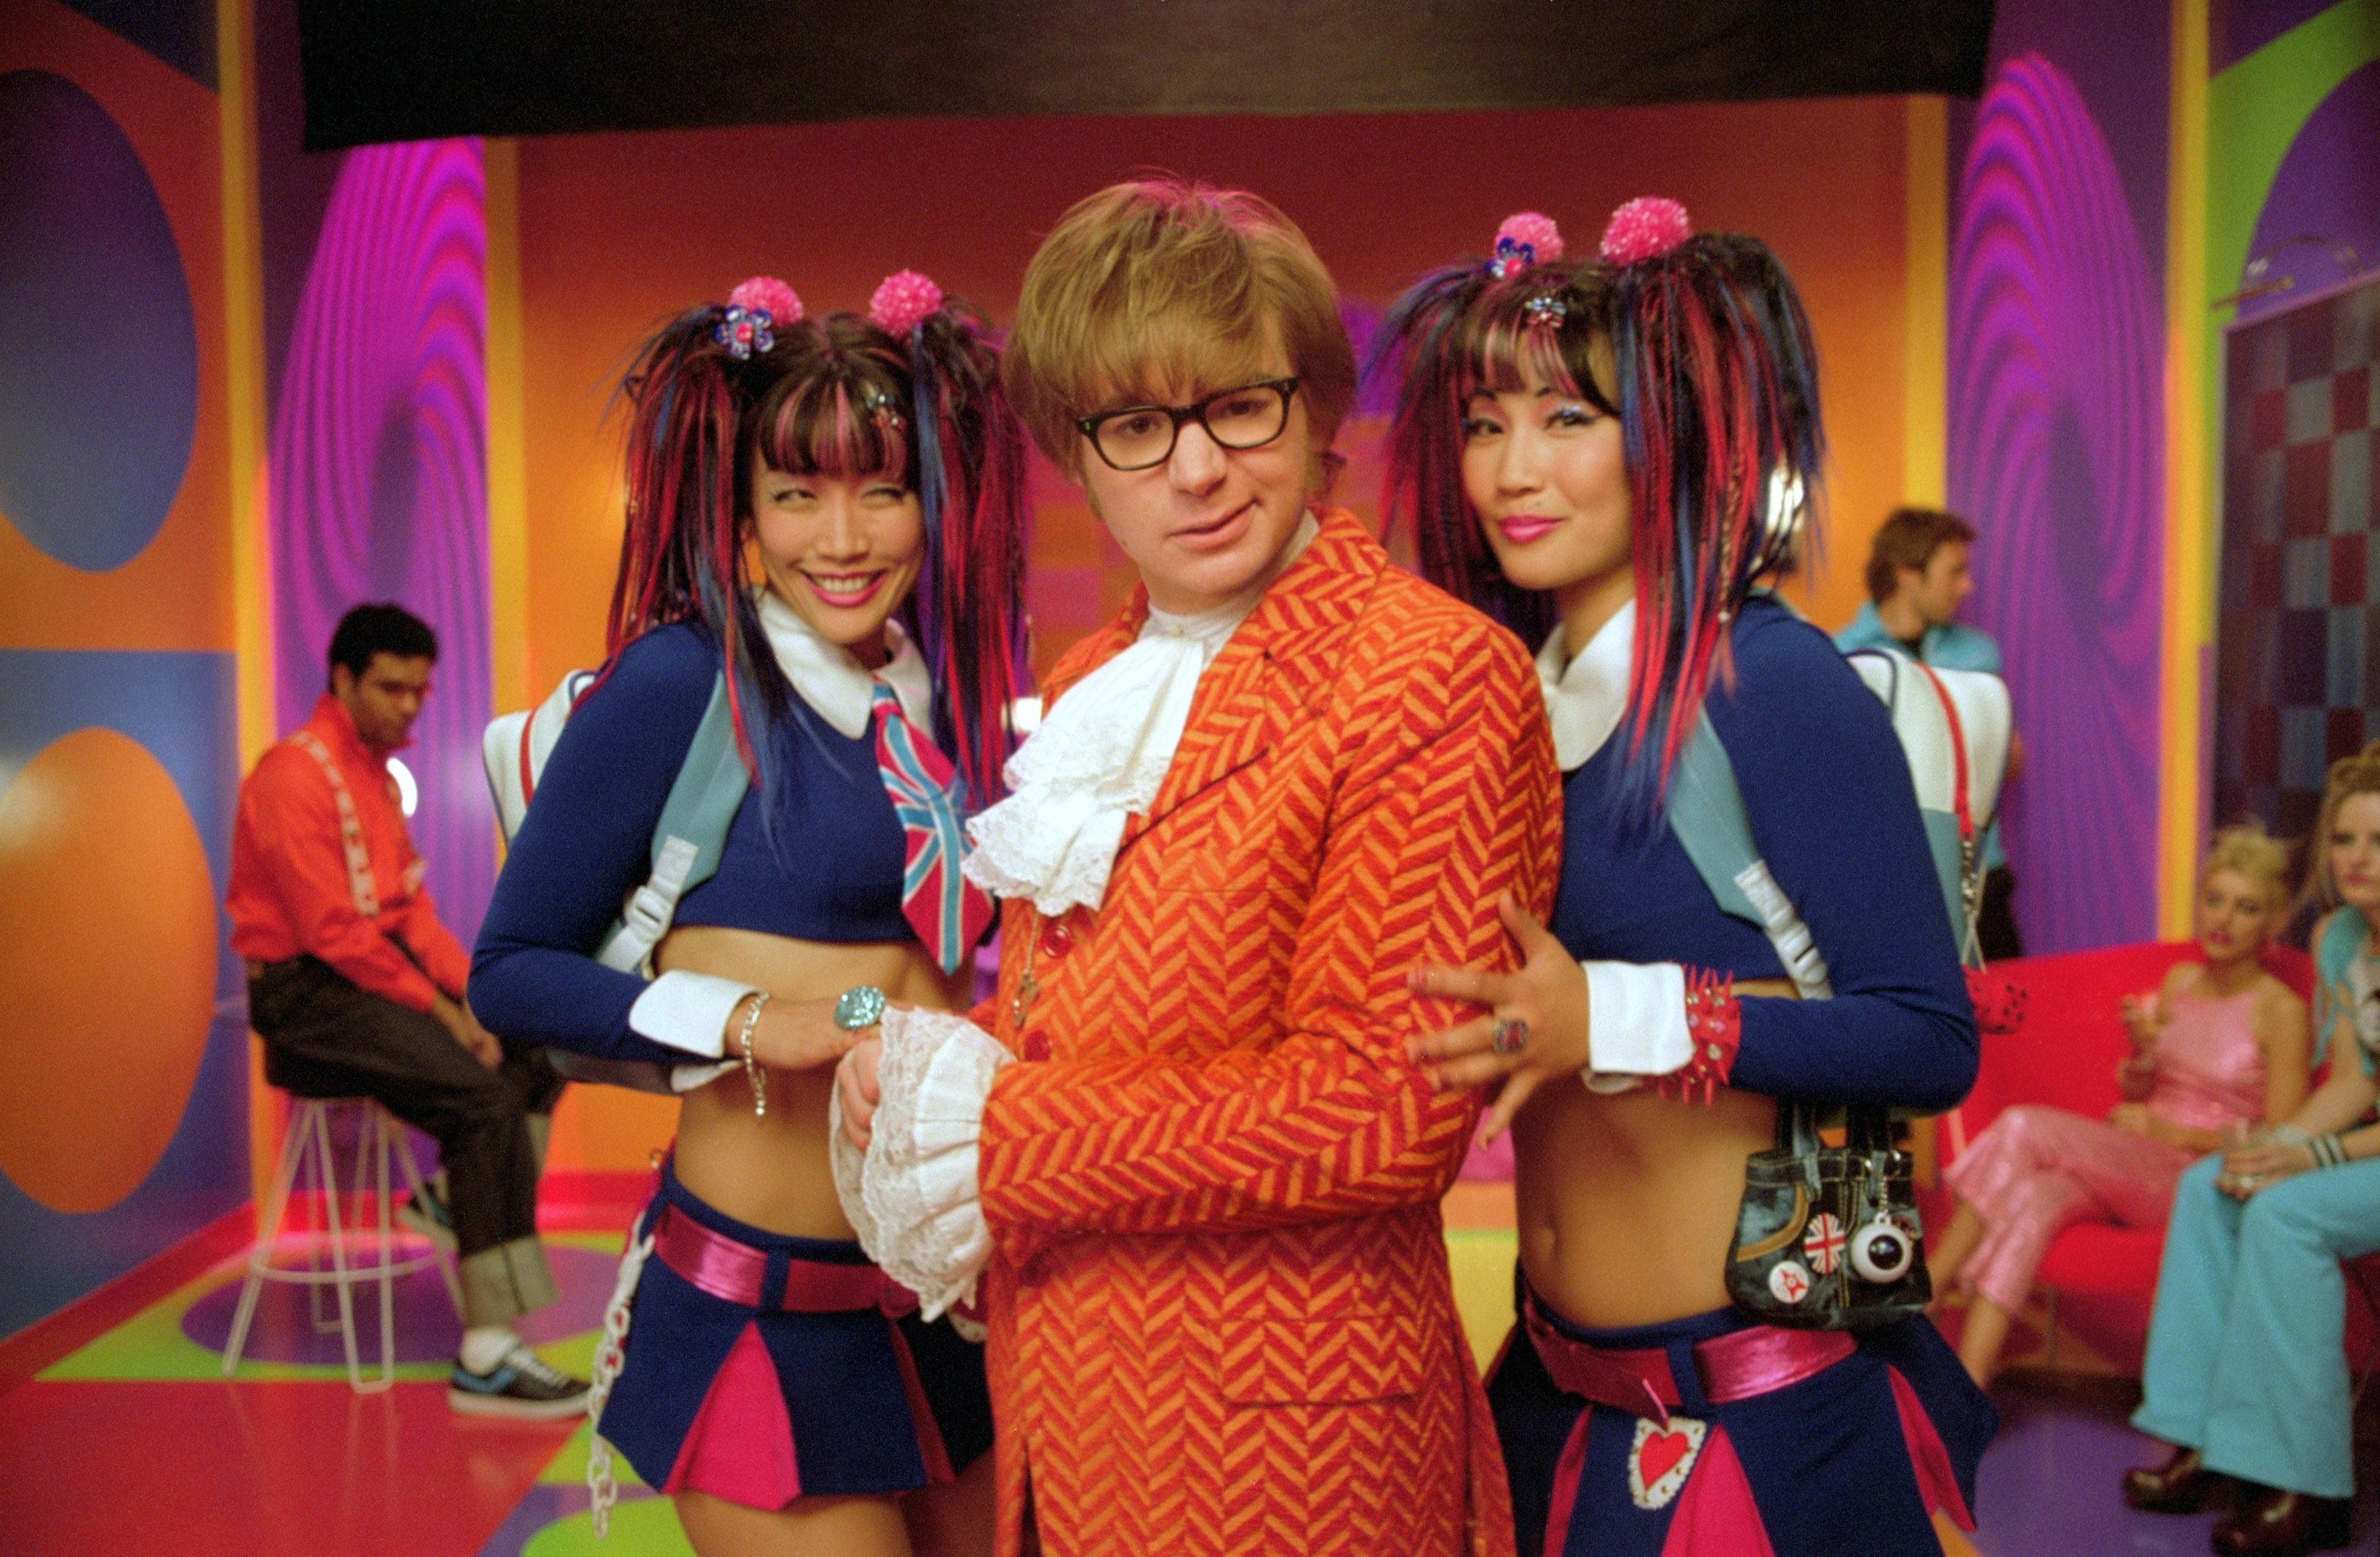 Editorial use only. No book cover usage. Mandatory Credit: Photo by New Line/Kobal/Shutterstock (5884526r) Diane Mizota, Mike Myers, Carrie Ann Inaba Austin Powers In Goldmember - 2002 Director: Jay Roach New Line USA Scene Still Austin Powers dans Goldmember